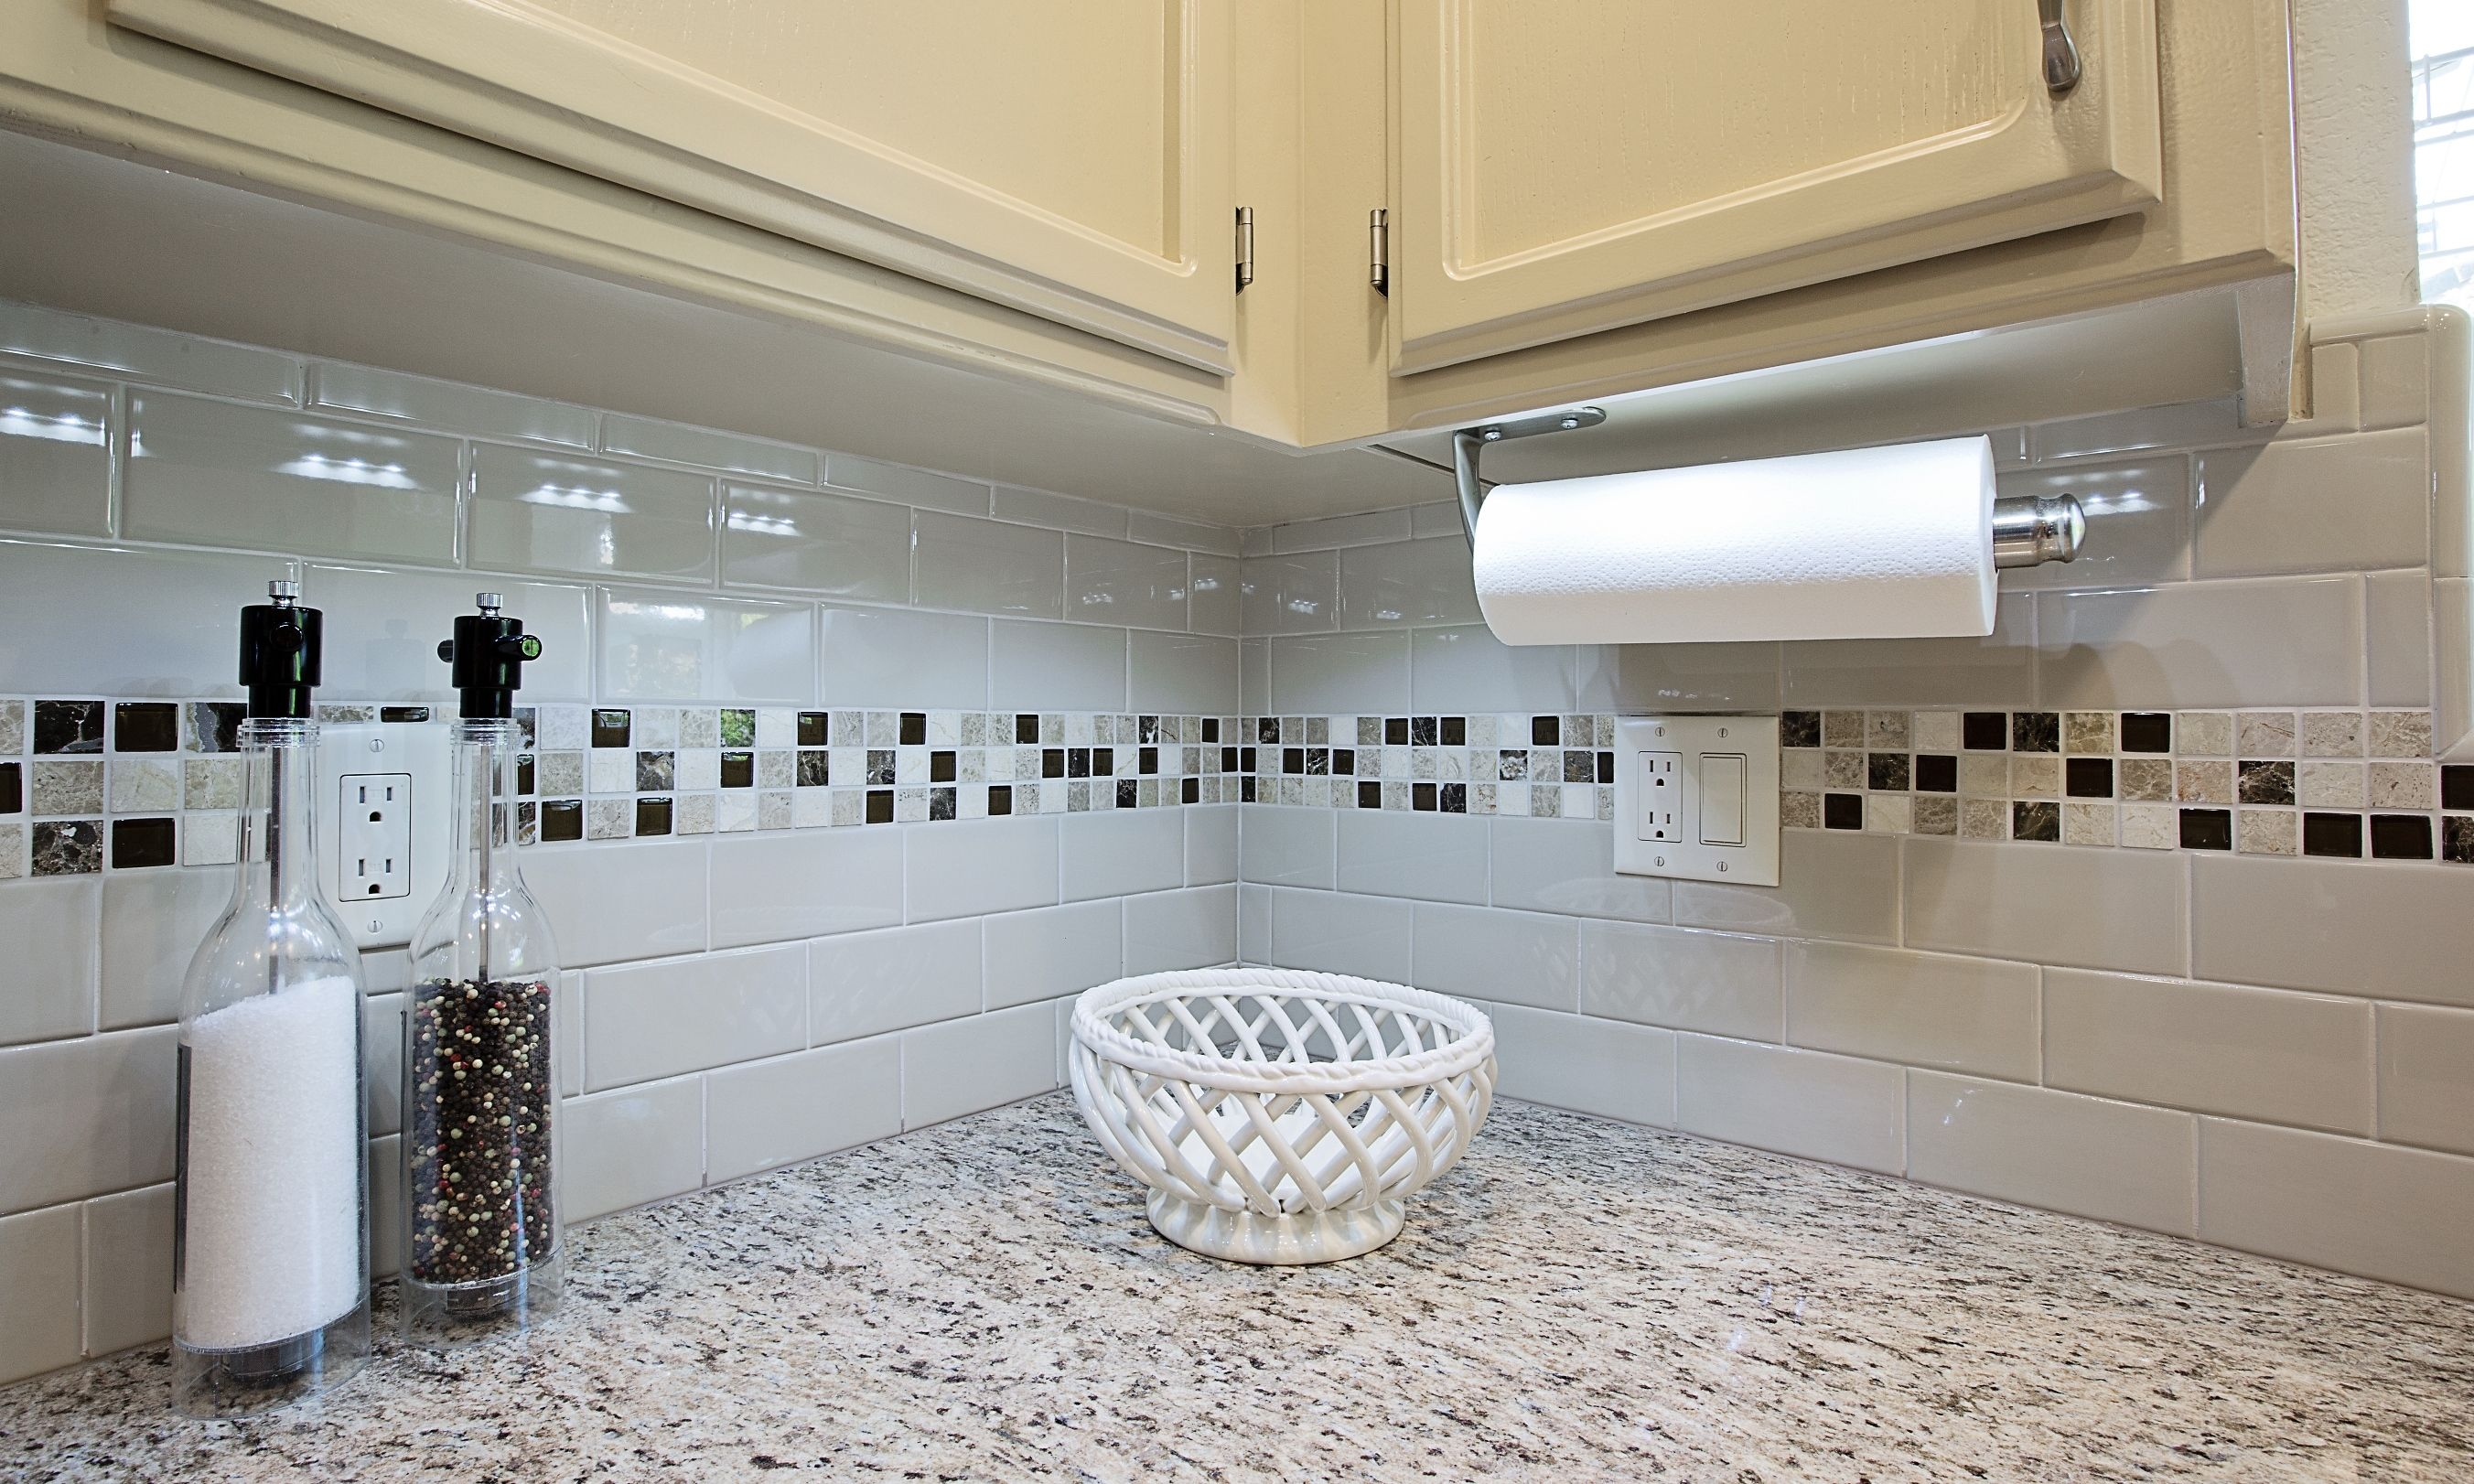 Celebrating national backsplash month part 3 kitchencrate this celebrating national backsplash month part 3 kitchencrate this daltile urban putty x 6 gloss subway tiles in a brick set pattern with an accent strip of msi dailygadgetfo Image collections